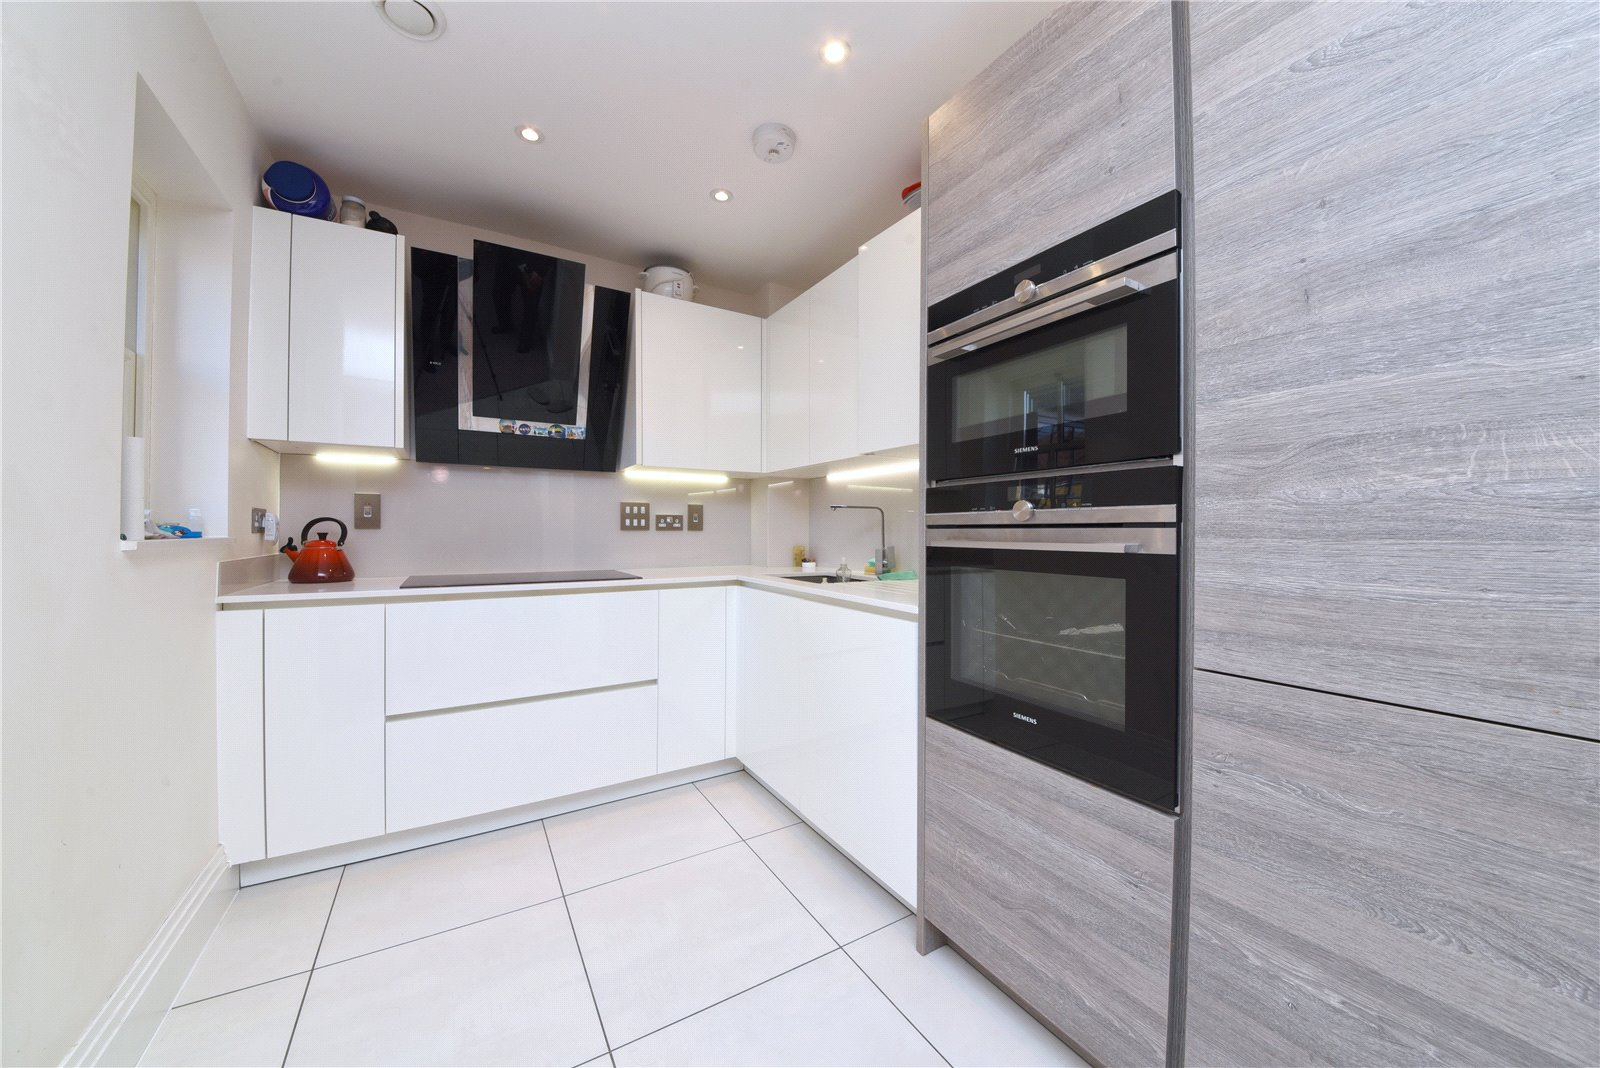 2 bed apartment for sale in Woodside Park, N12 8QP 1